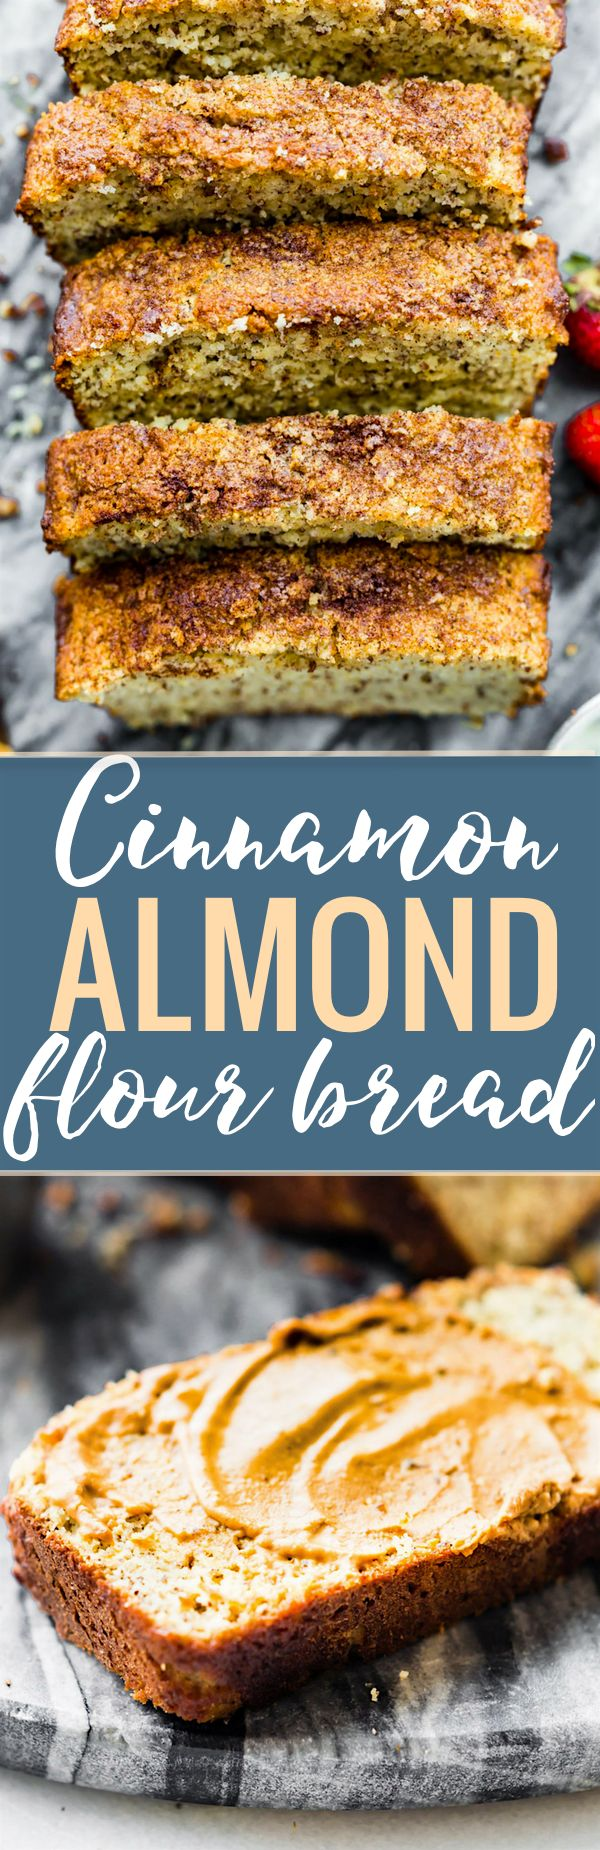 Paleo CINNAMON ALMOND FLOUR BREAD! Our go-to every day bread! Simple healthy ingredients, naturally low in sugar, soft and delicious ya'll! www.cottercrunch.com